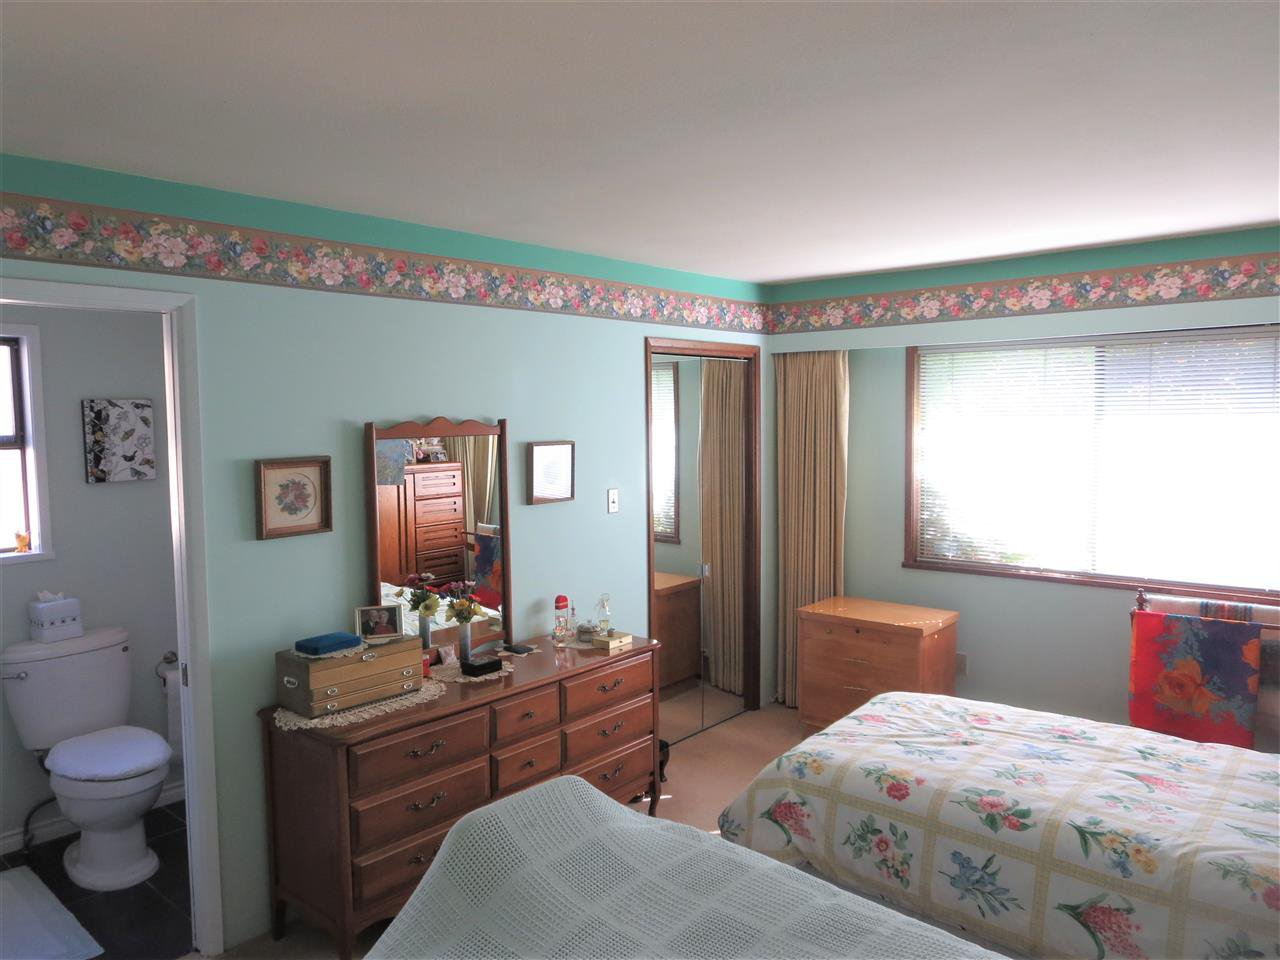 Photo 7: Photos: 10560 HOGARTH Drive in Richmond: Woodwards House for sale : MLS®# R2213924